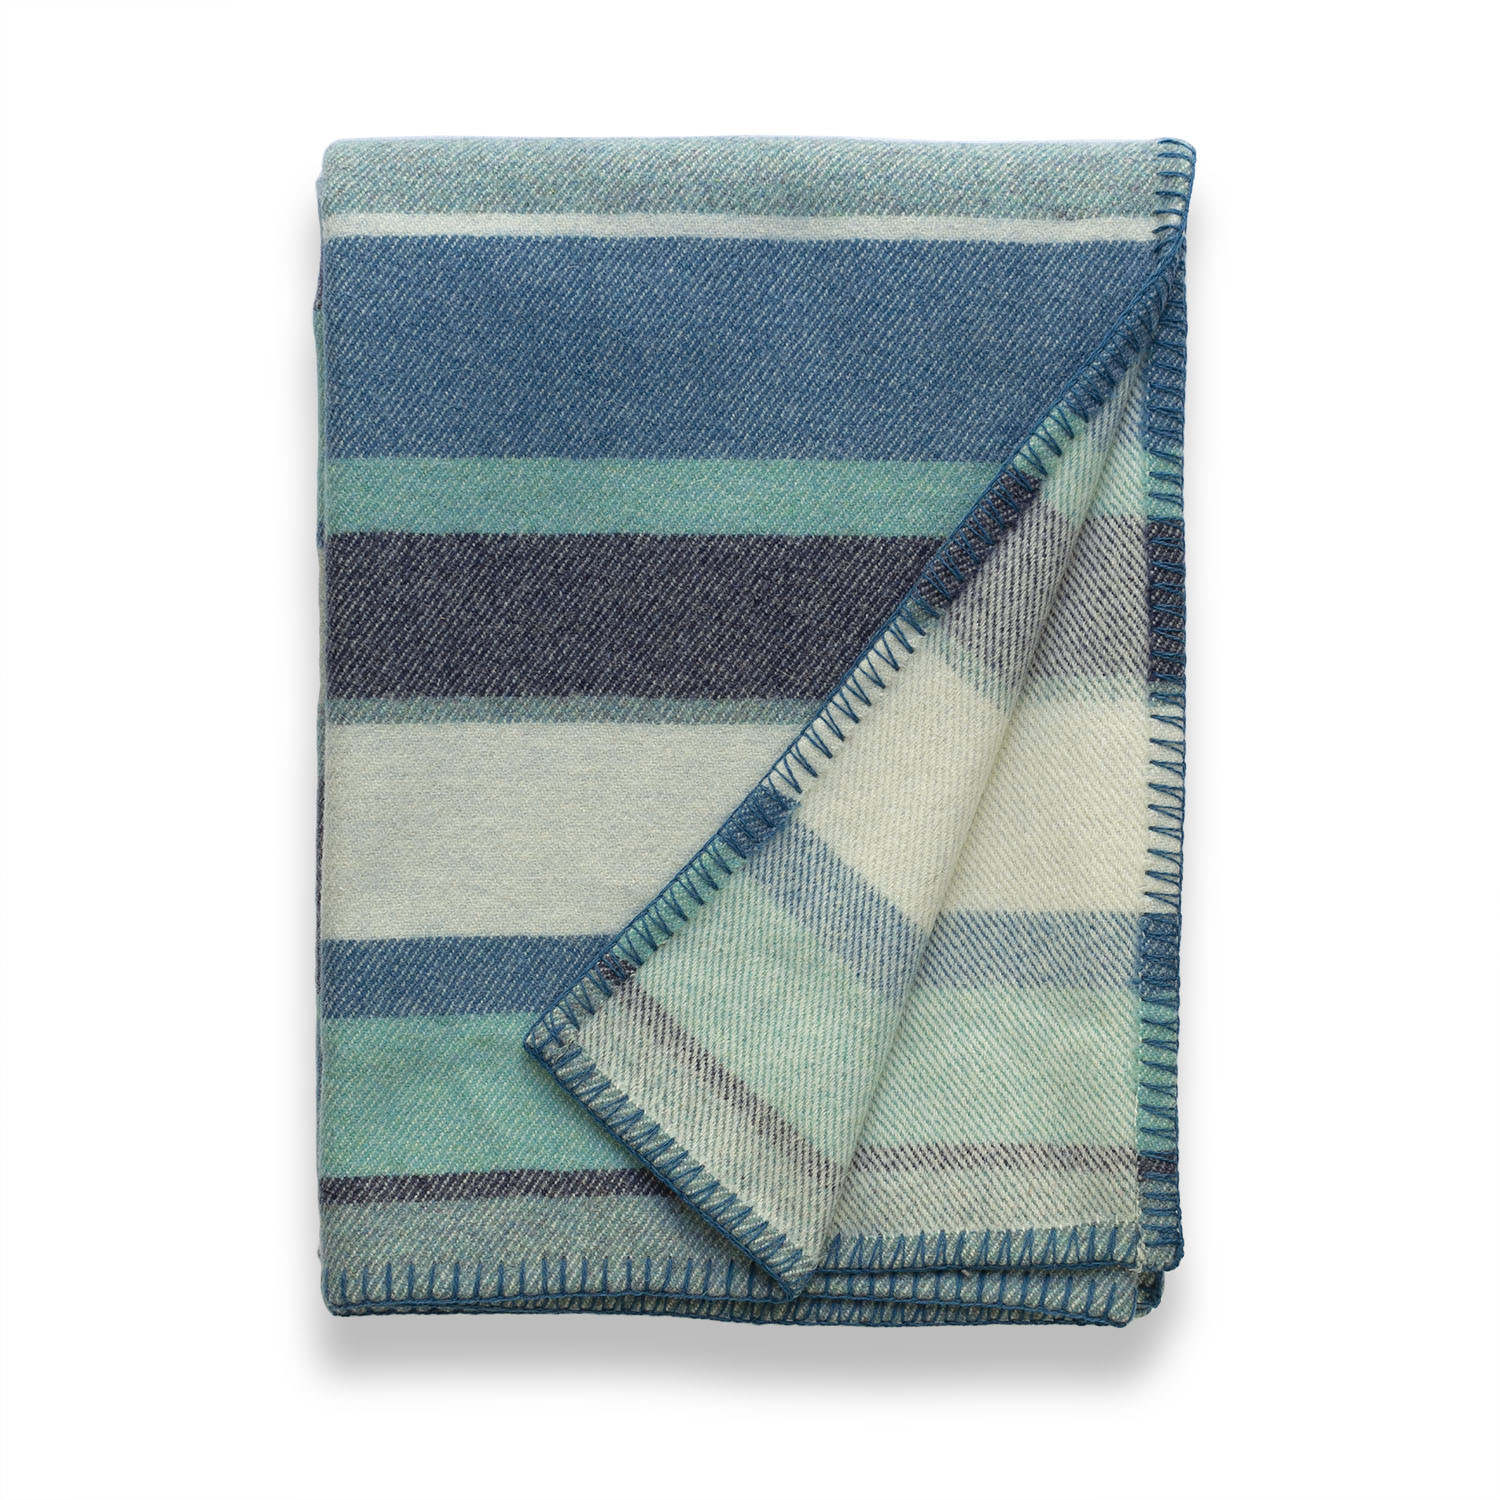 Clubstripe lagoon throw